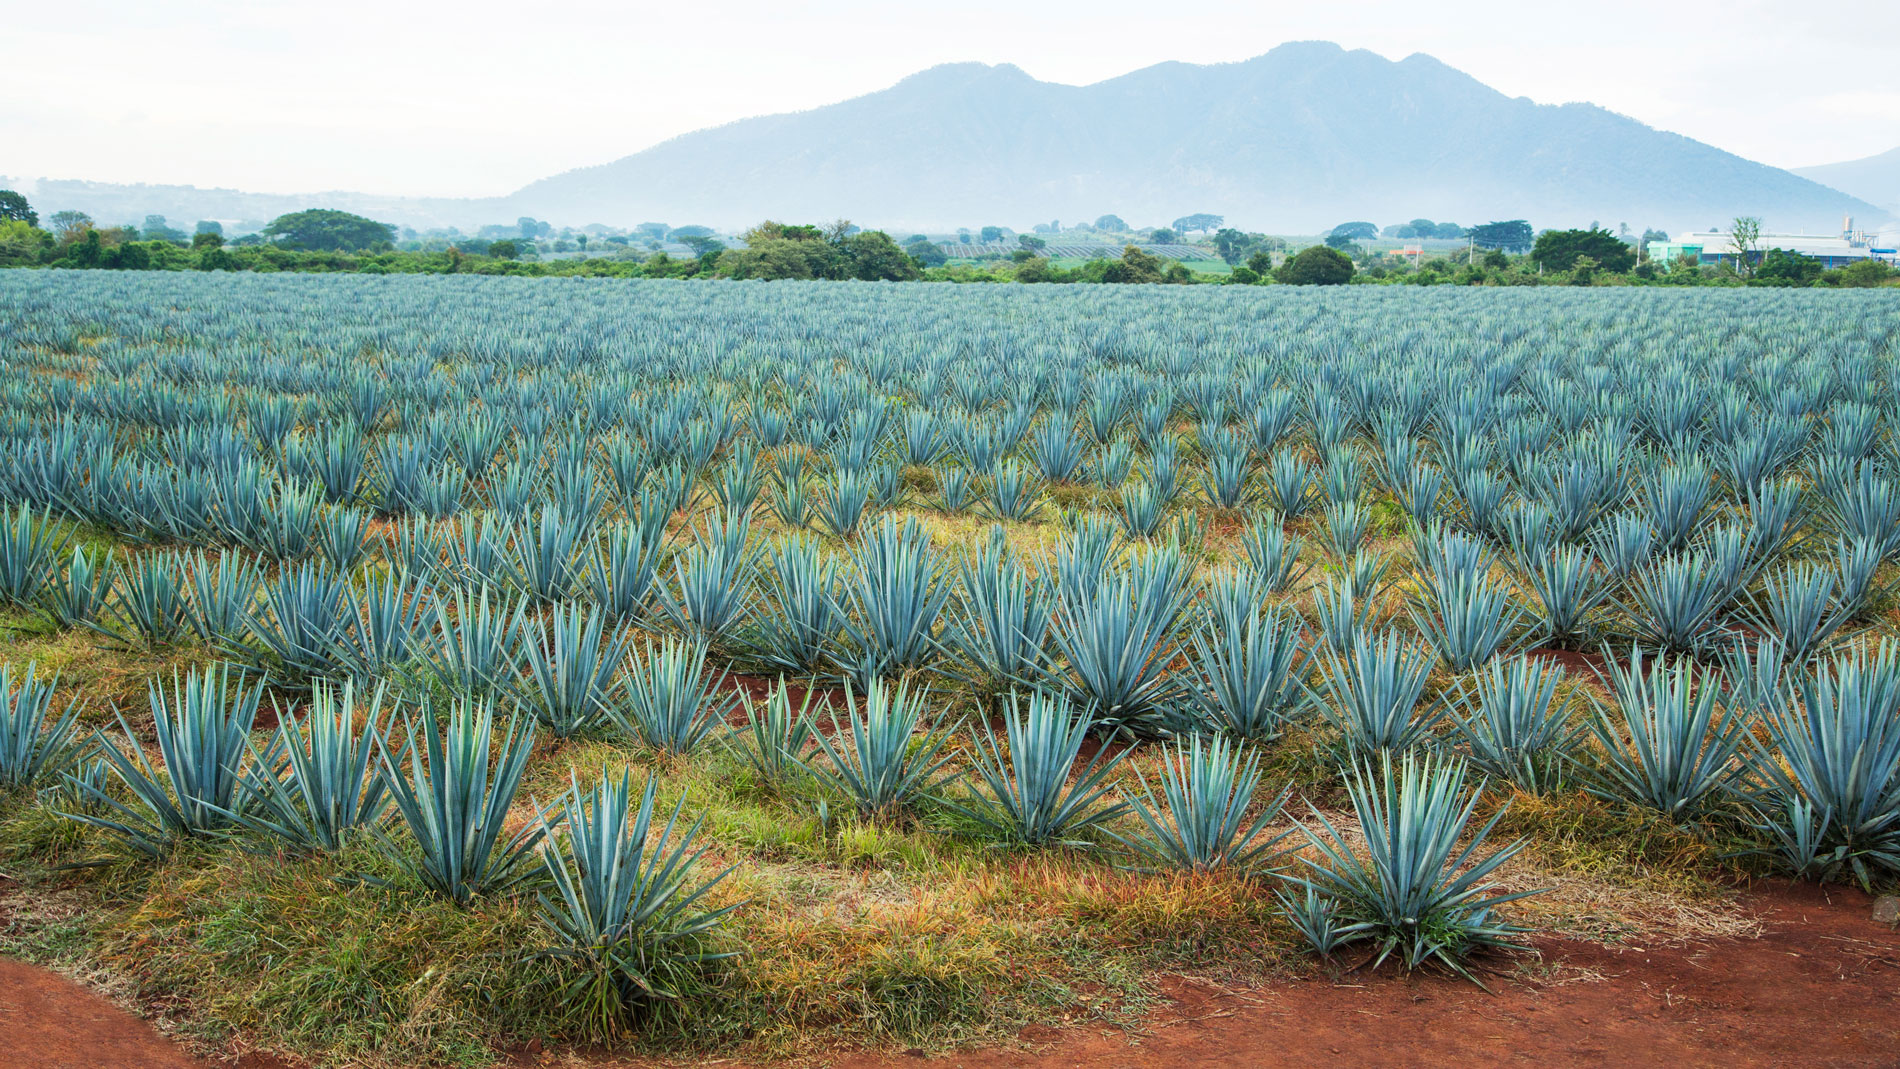 It's almost National Tequila Day! Here are the 11 tequila terms every tequila drinker should know.